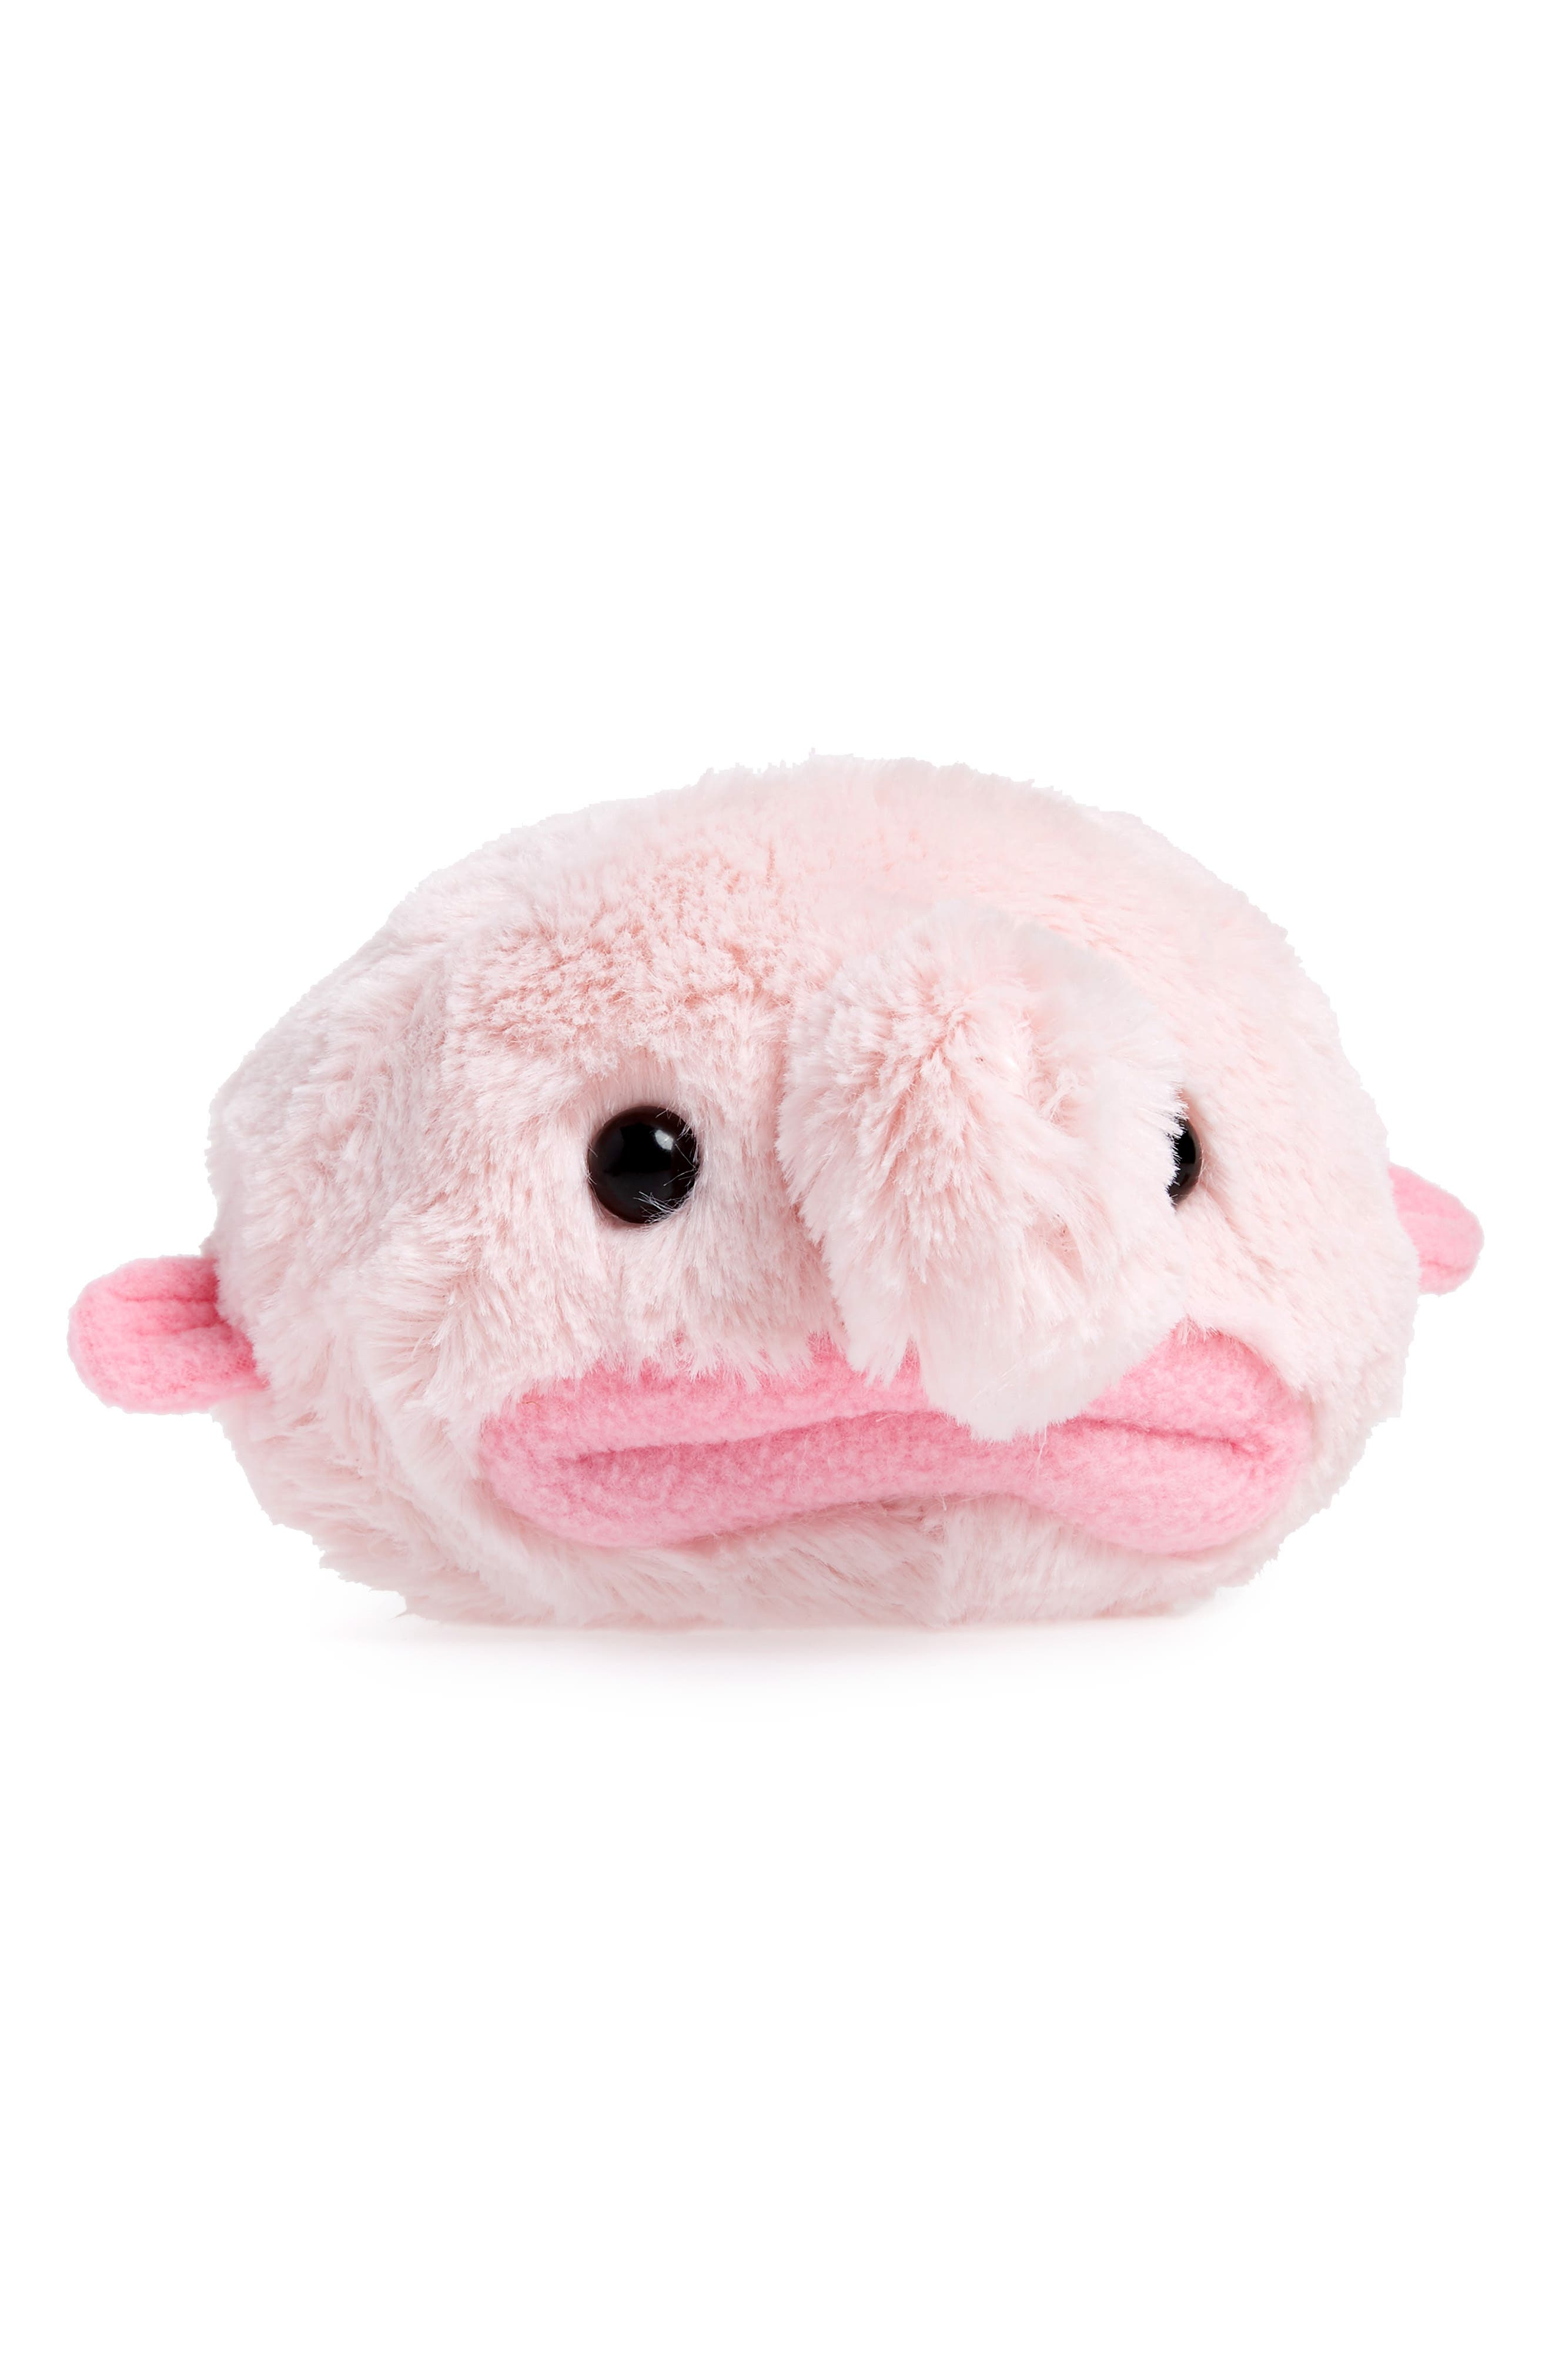 HASHTAG COLLECTIBLES Blobfish Stuffed Toy